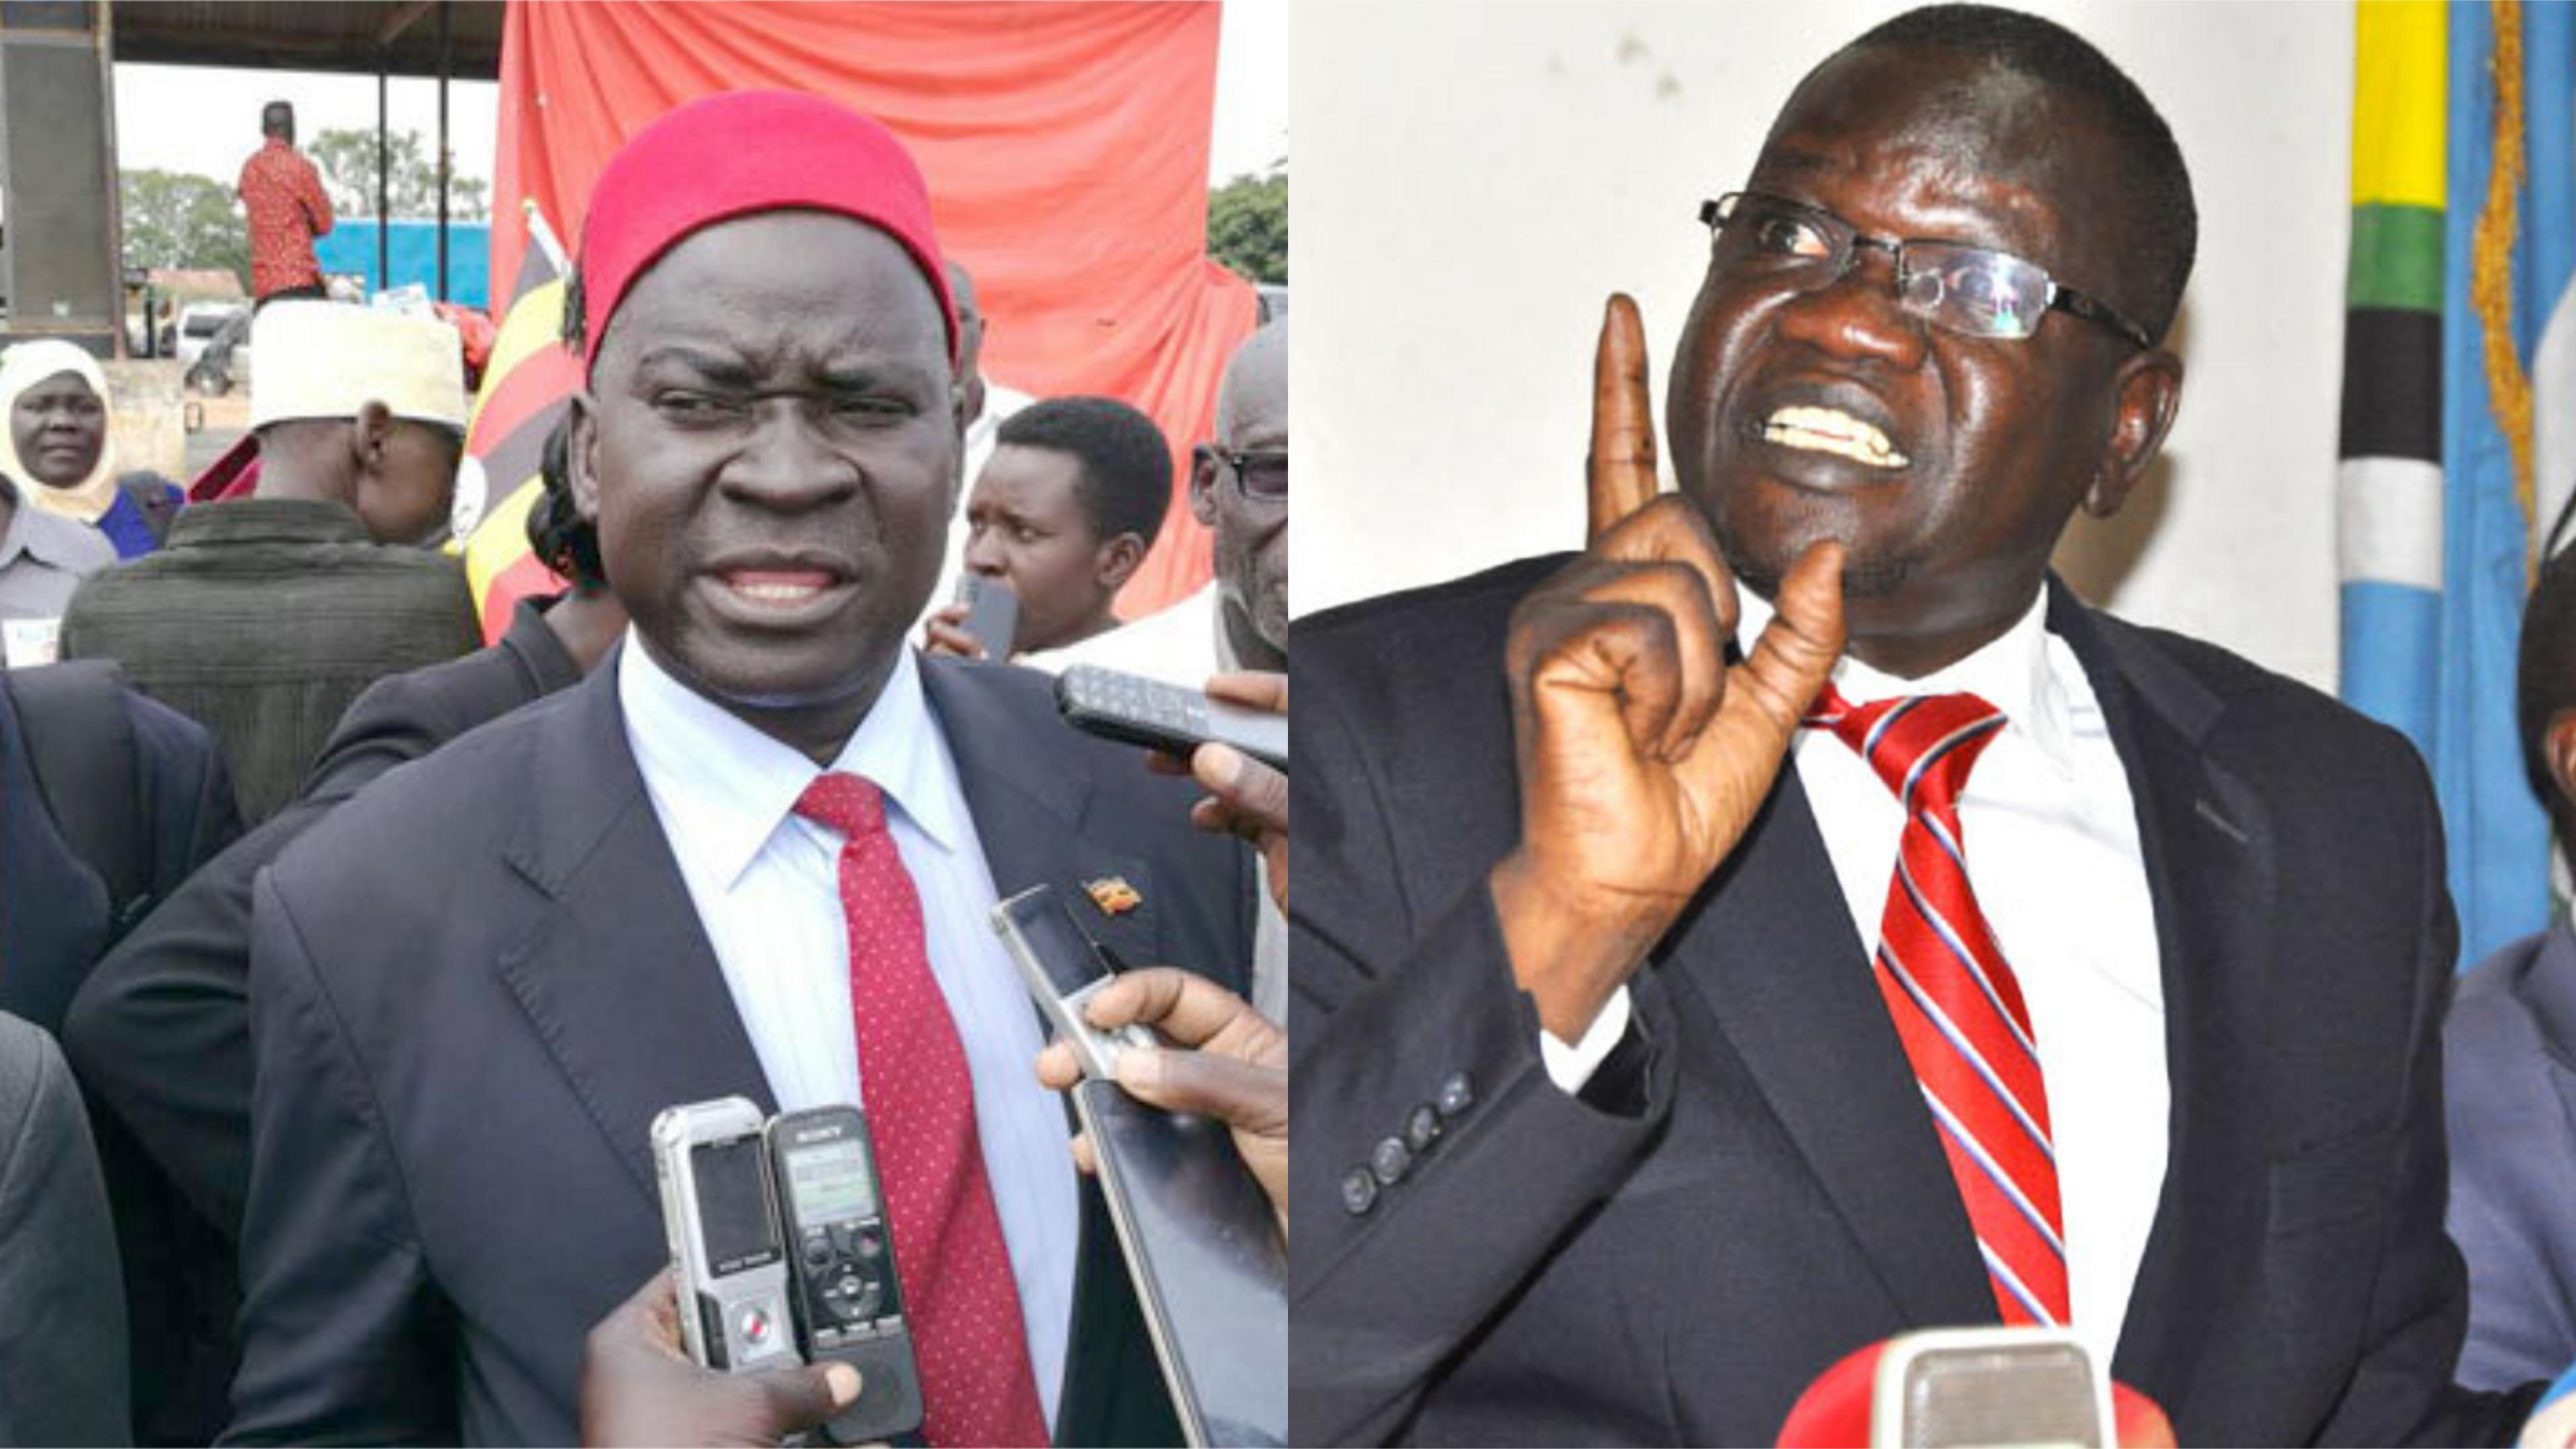 FDC Party president Patrick Amuriat acknowledged the Party conceded defeat and congratulated Opposition-leaning Kassiano Wadri on the victory (FILE PHOTO)